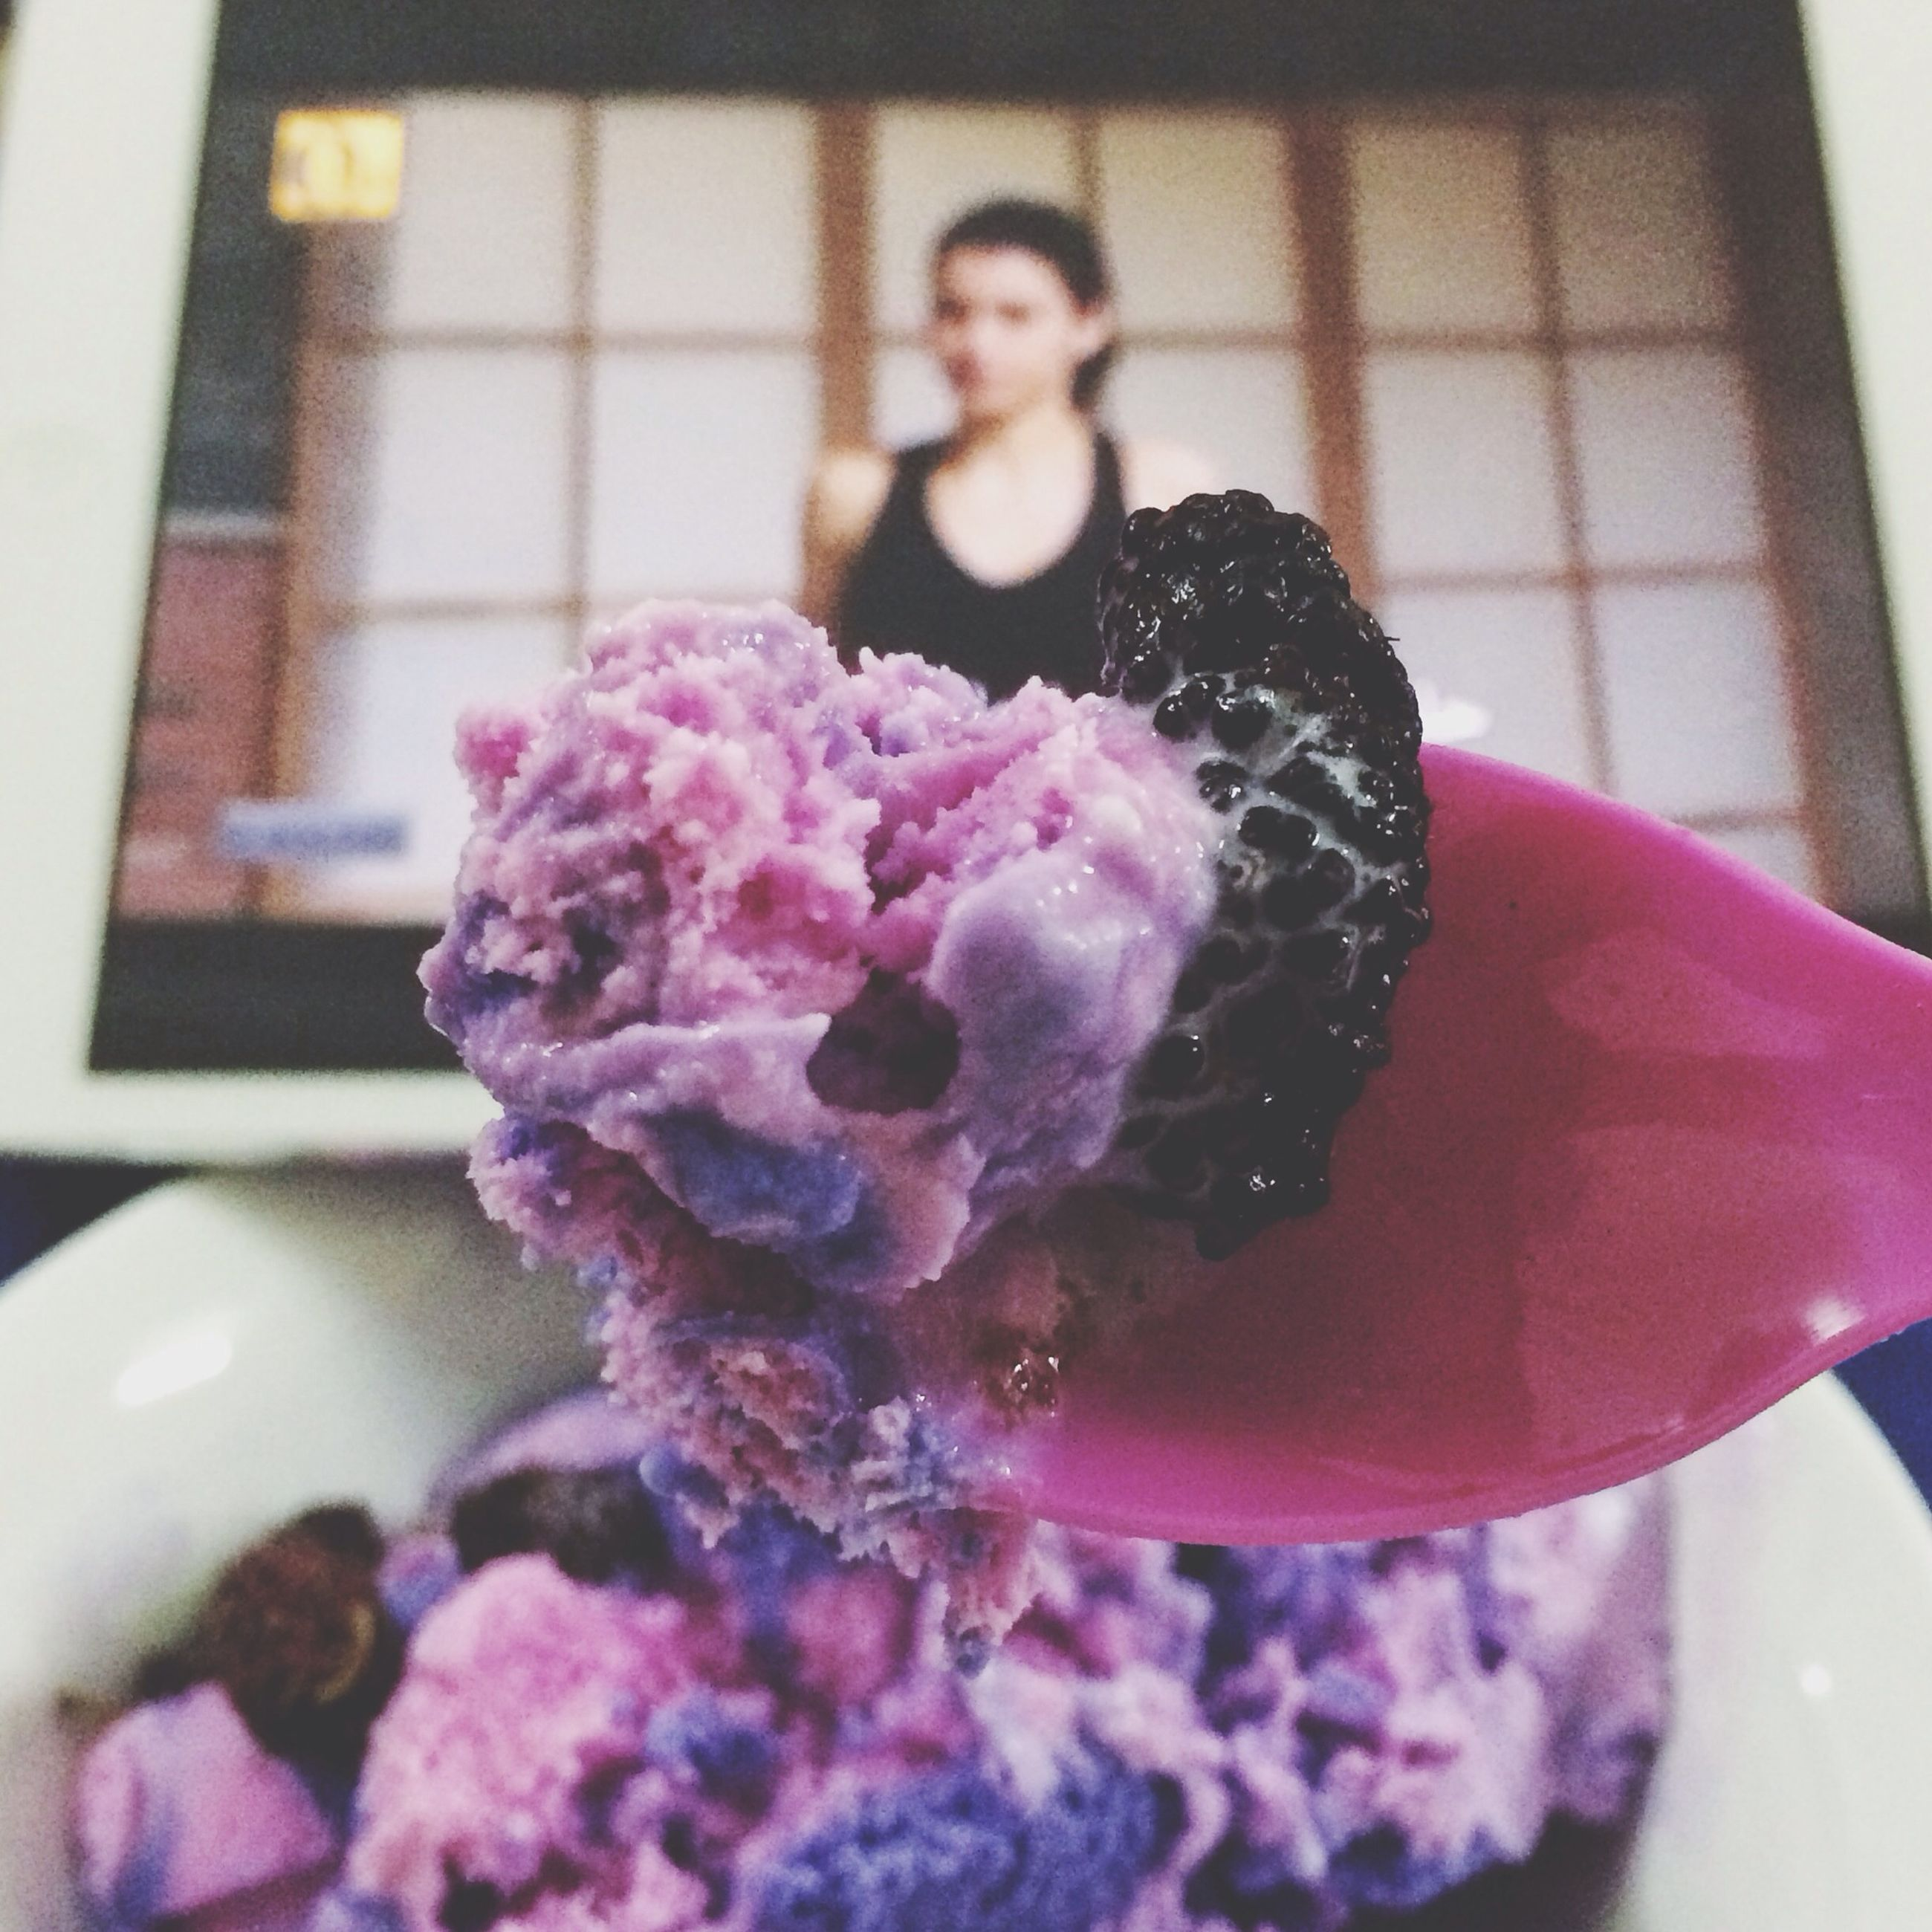 freshness, indoors, flower, pink color, food and drink, sweet food, focus on foreground, food, close-up, holding, dessert, ice cream, table, purple, frozen food, window, home interior, rose - flower